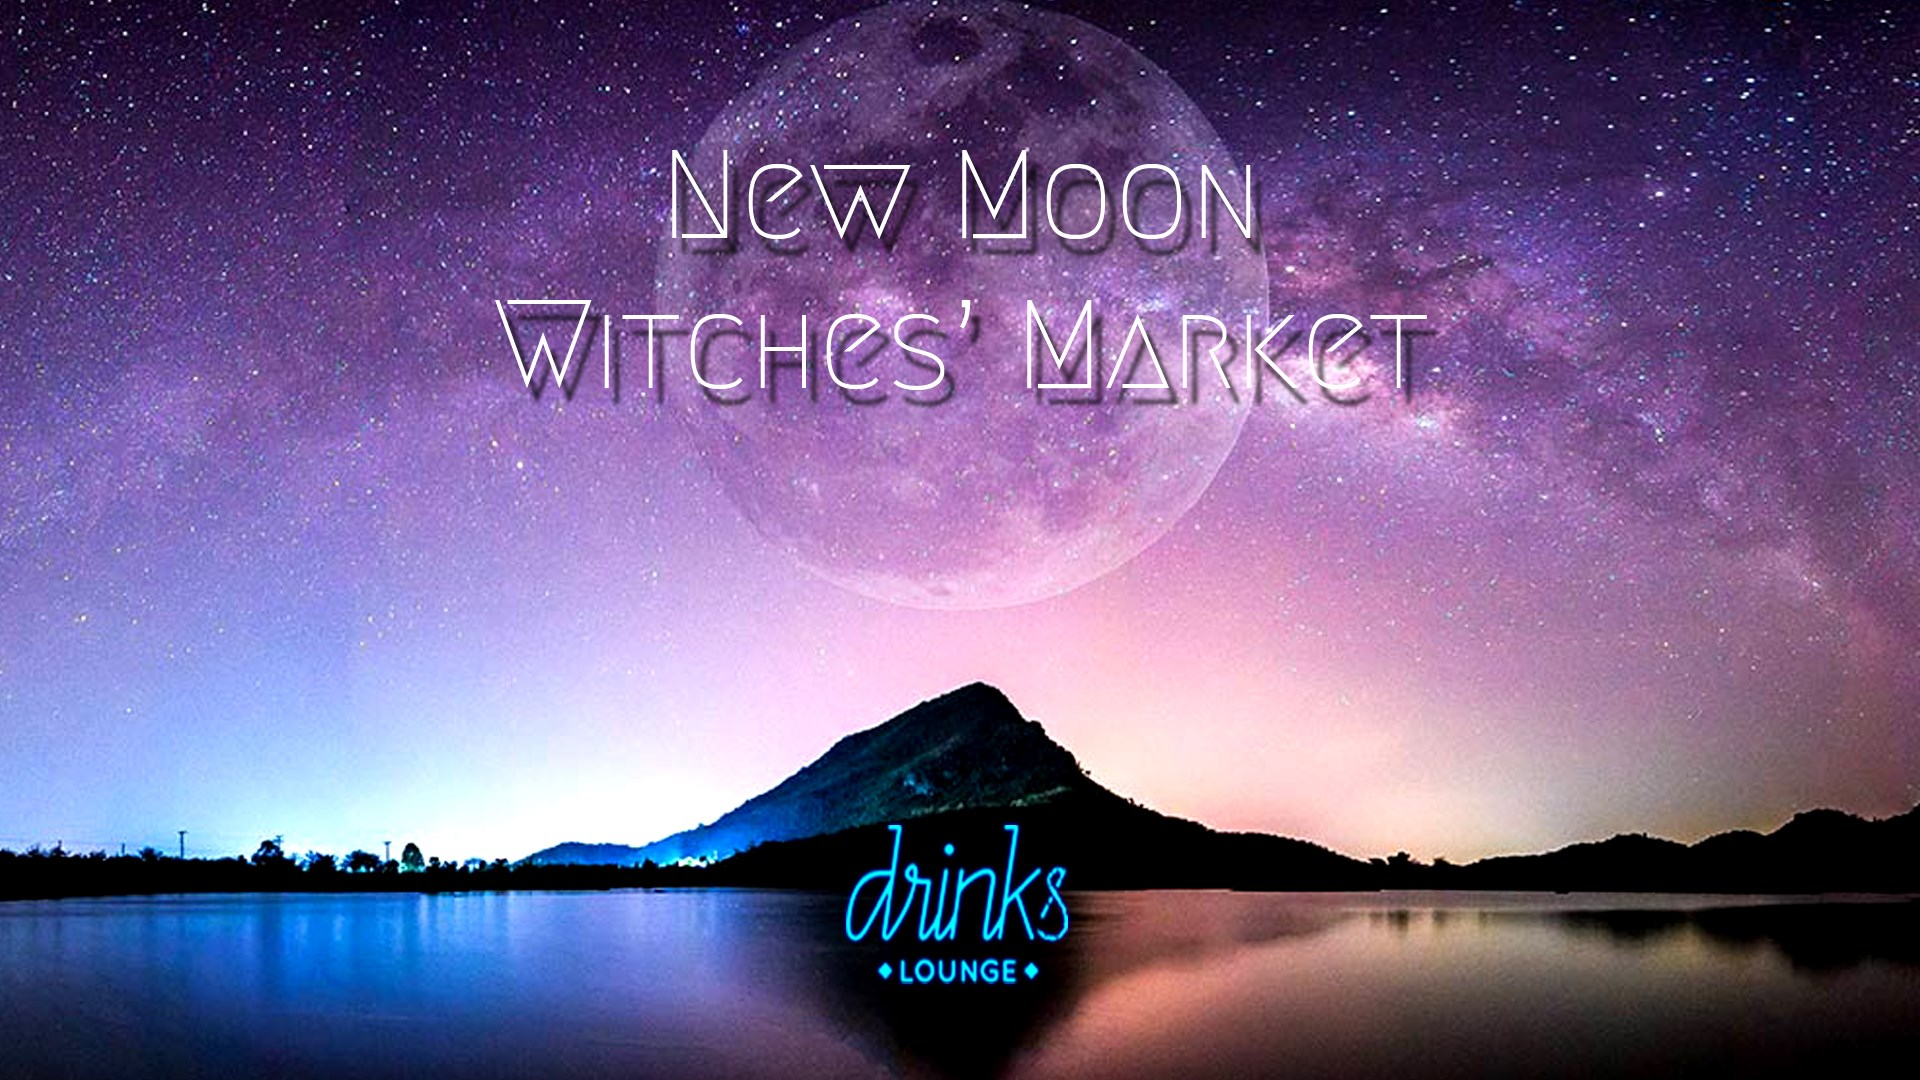 New Moon Witches' Market